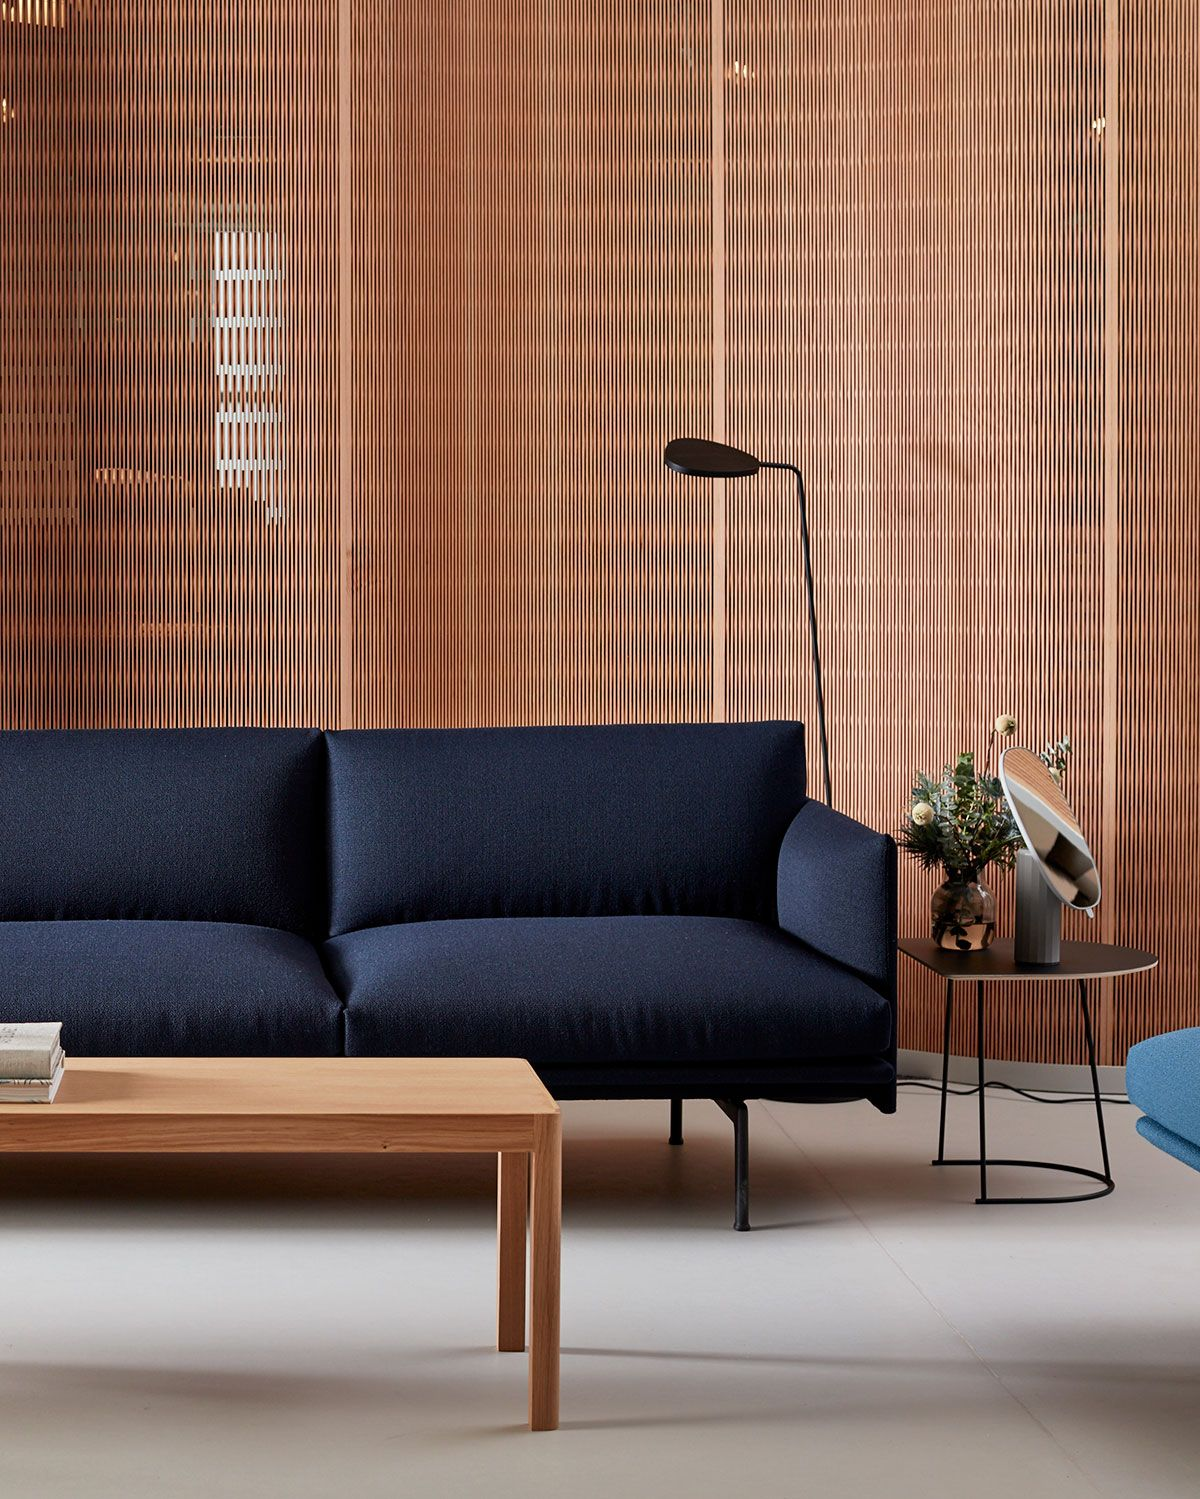 Modernly Timeless Muuto S Outline Sofa In A Dark Blue Hue Accompanied Here With The Scandinavian Sofa Design Living Room Scandinavian Living Room Inspiration